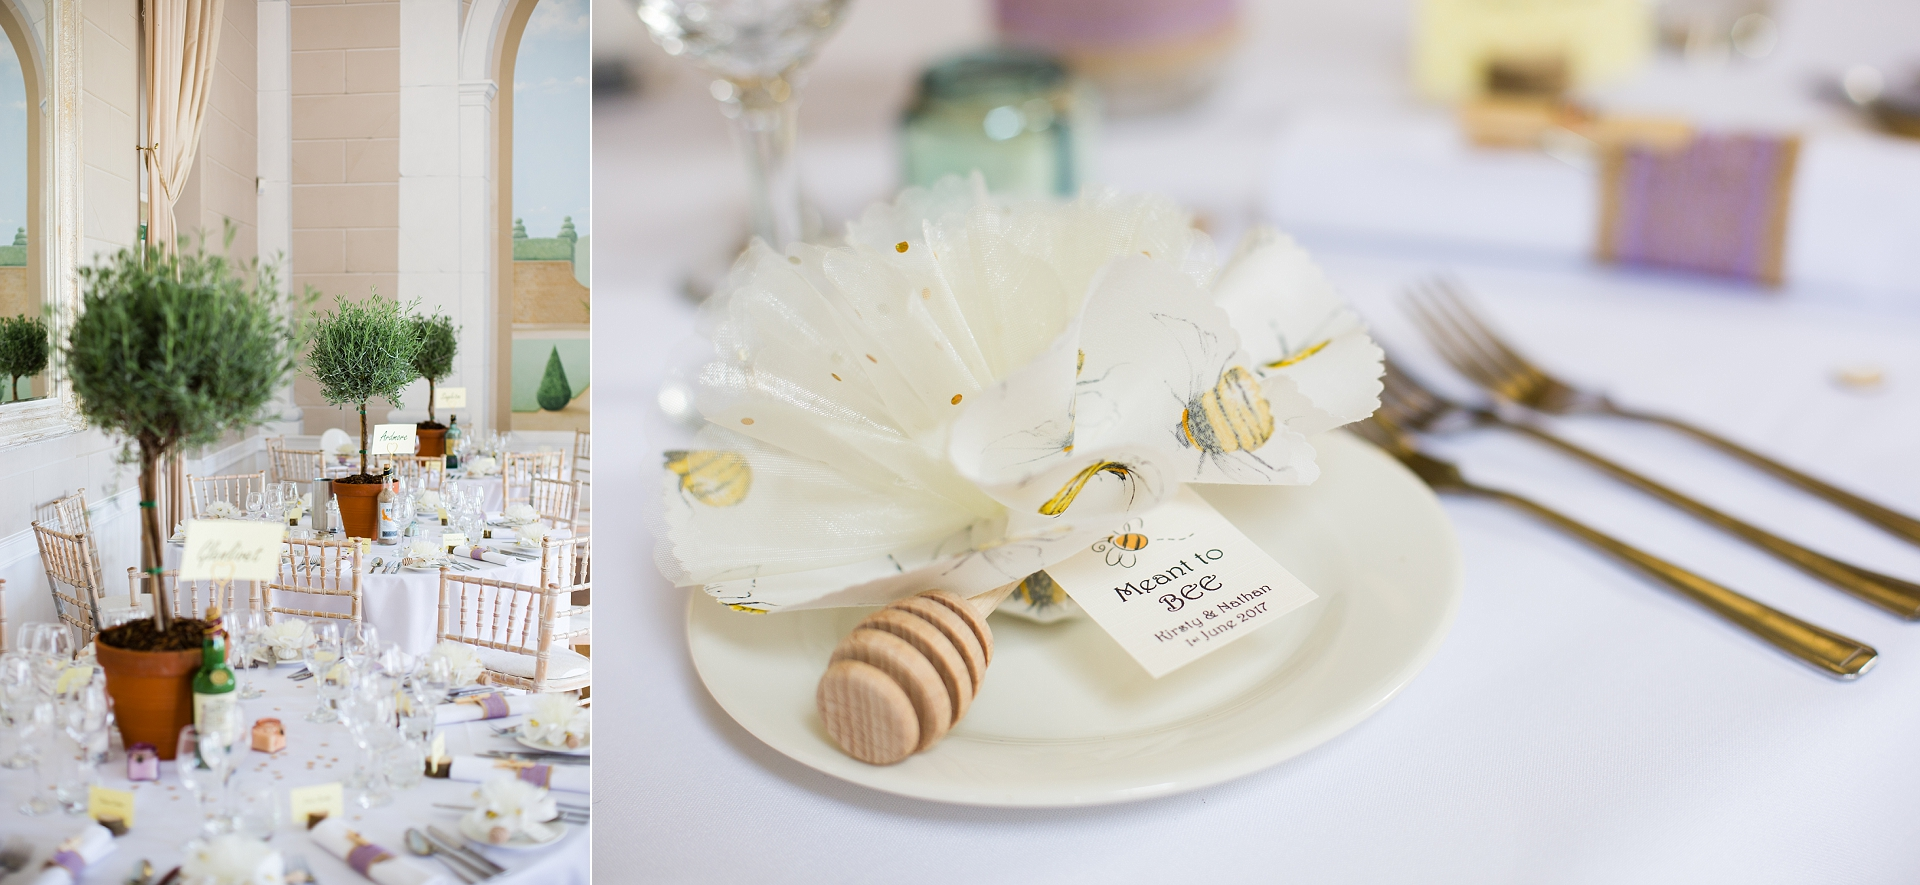 wedding breakfast details